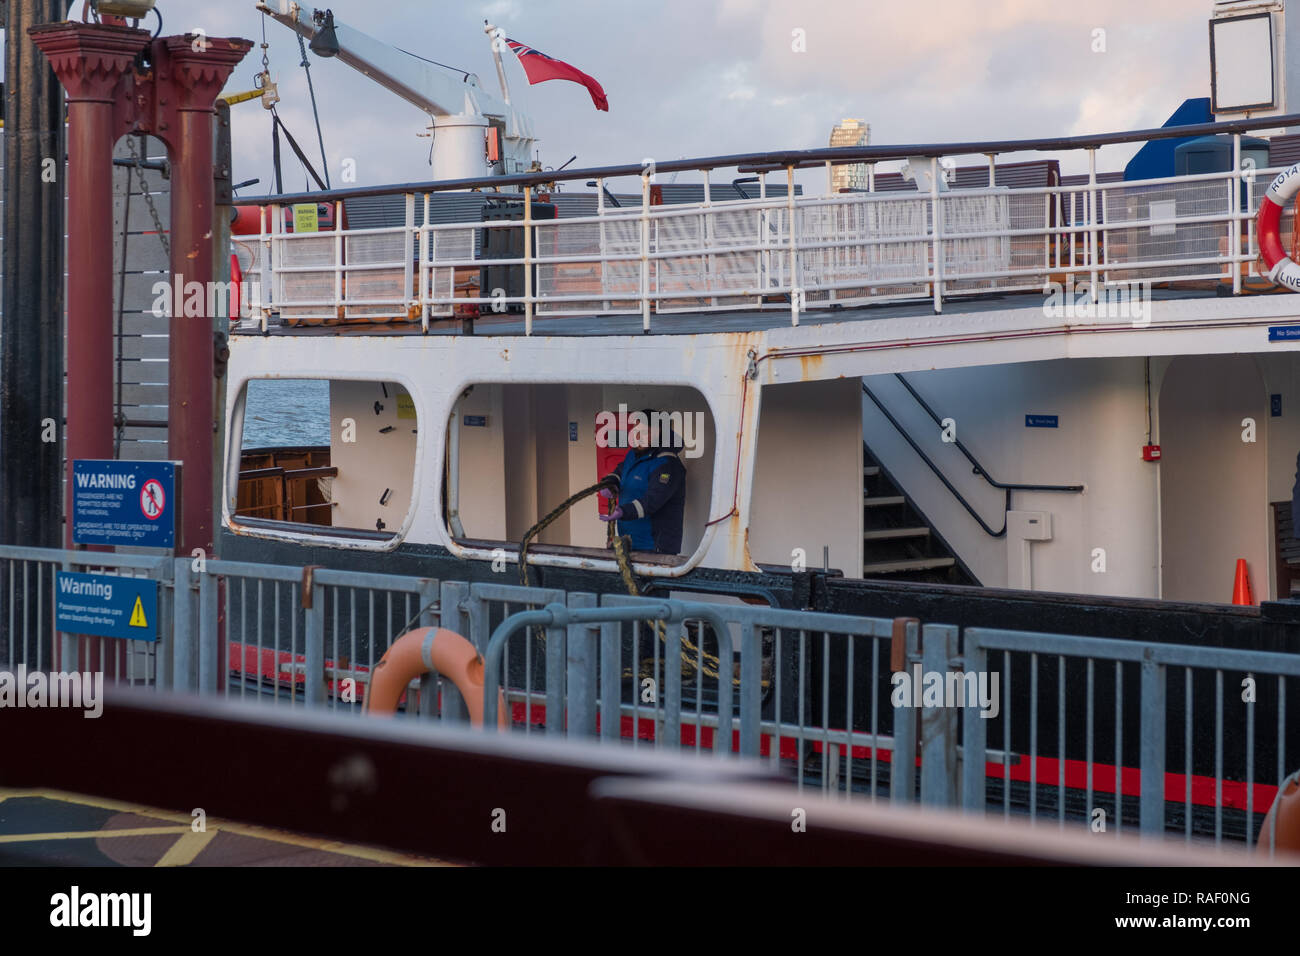 Royal Iris of the Mersey ferry docking at Woodside Ferry Terminal, Birkenhead - Stock Image